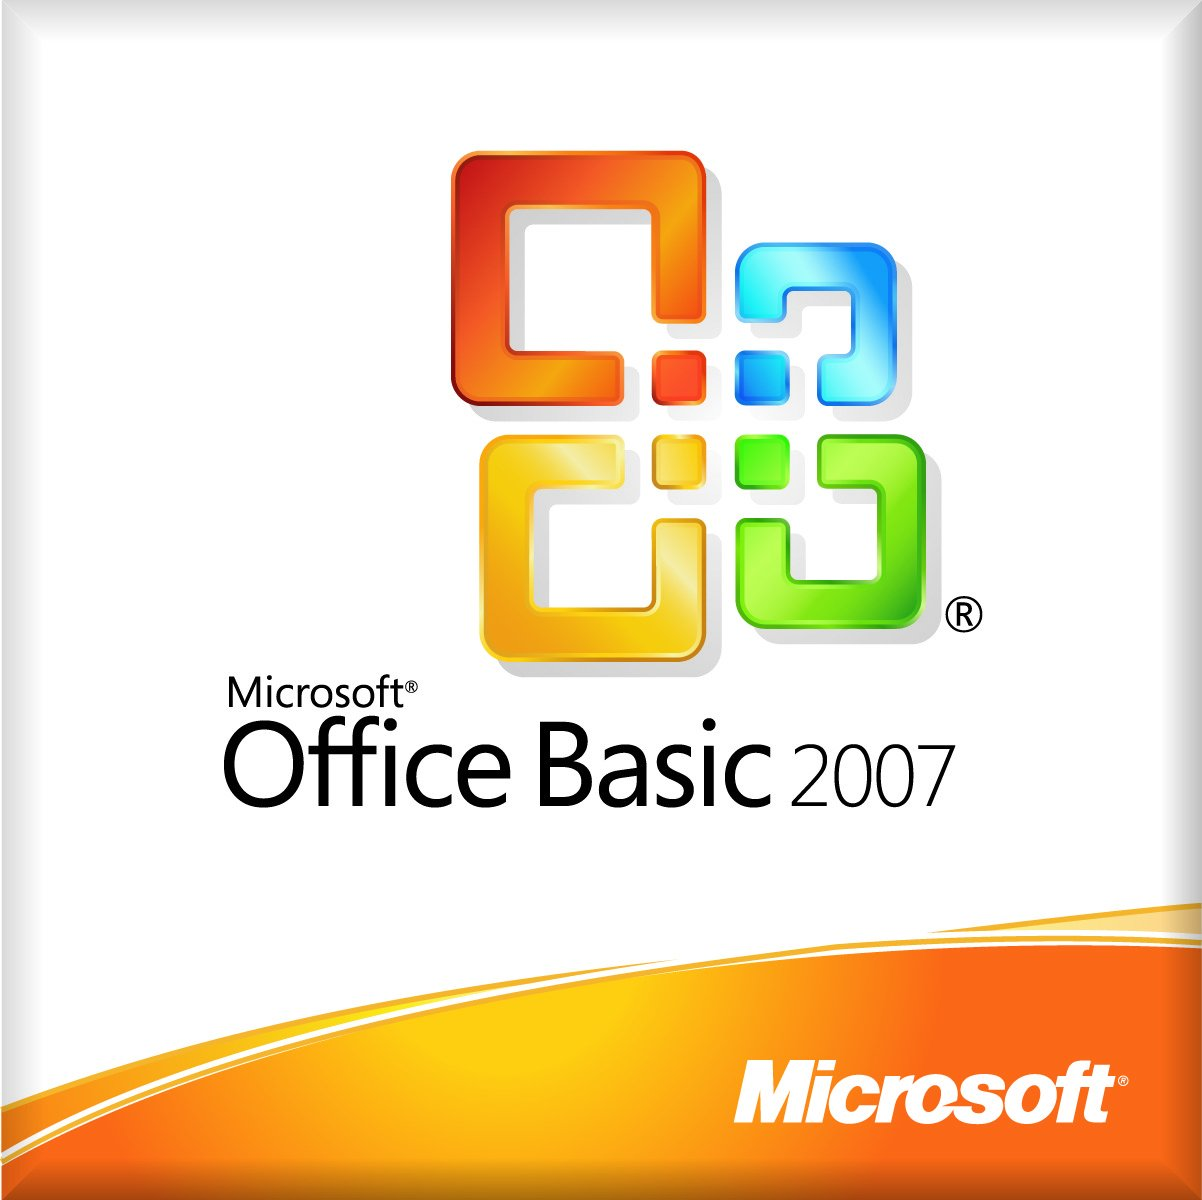 Ms office 2017 basic mlk na sw